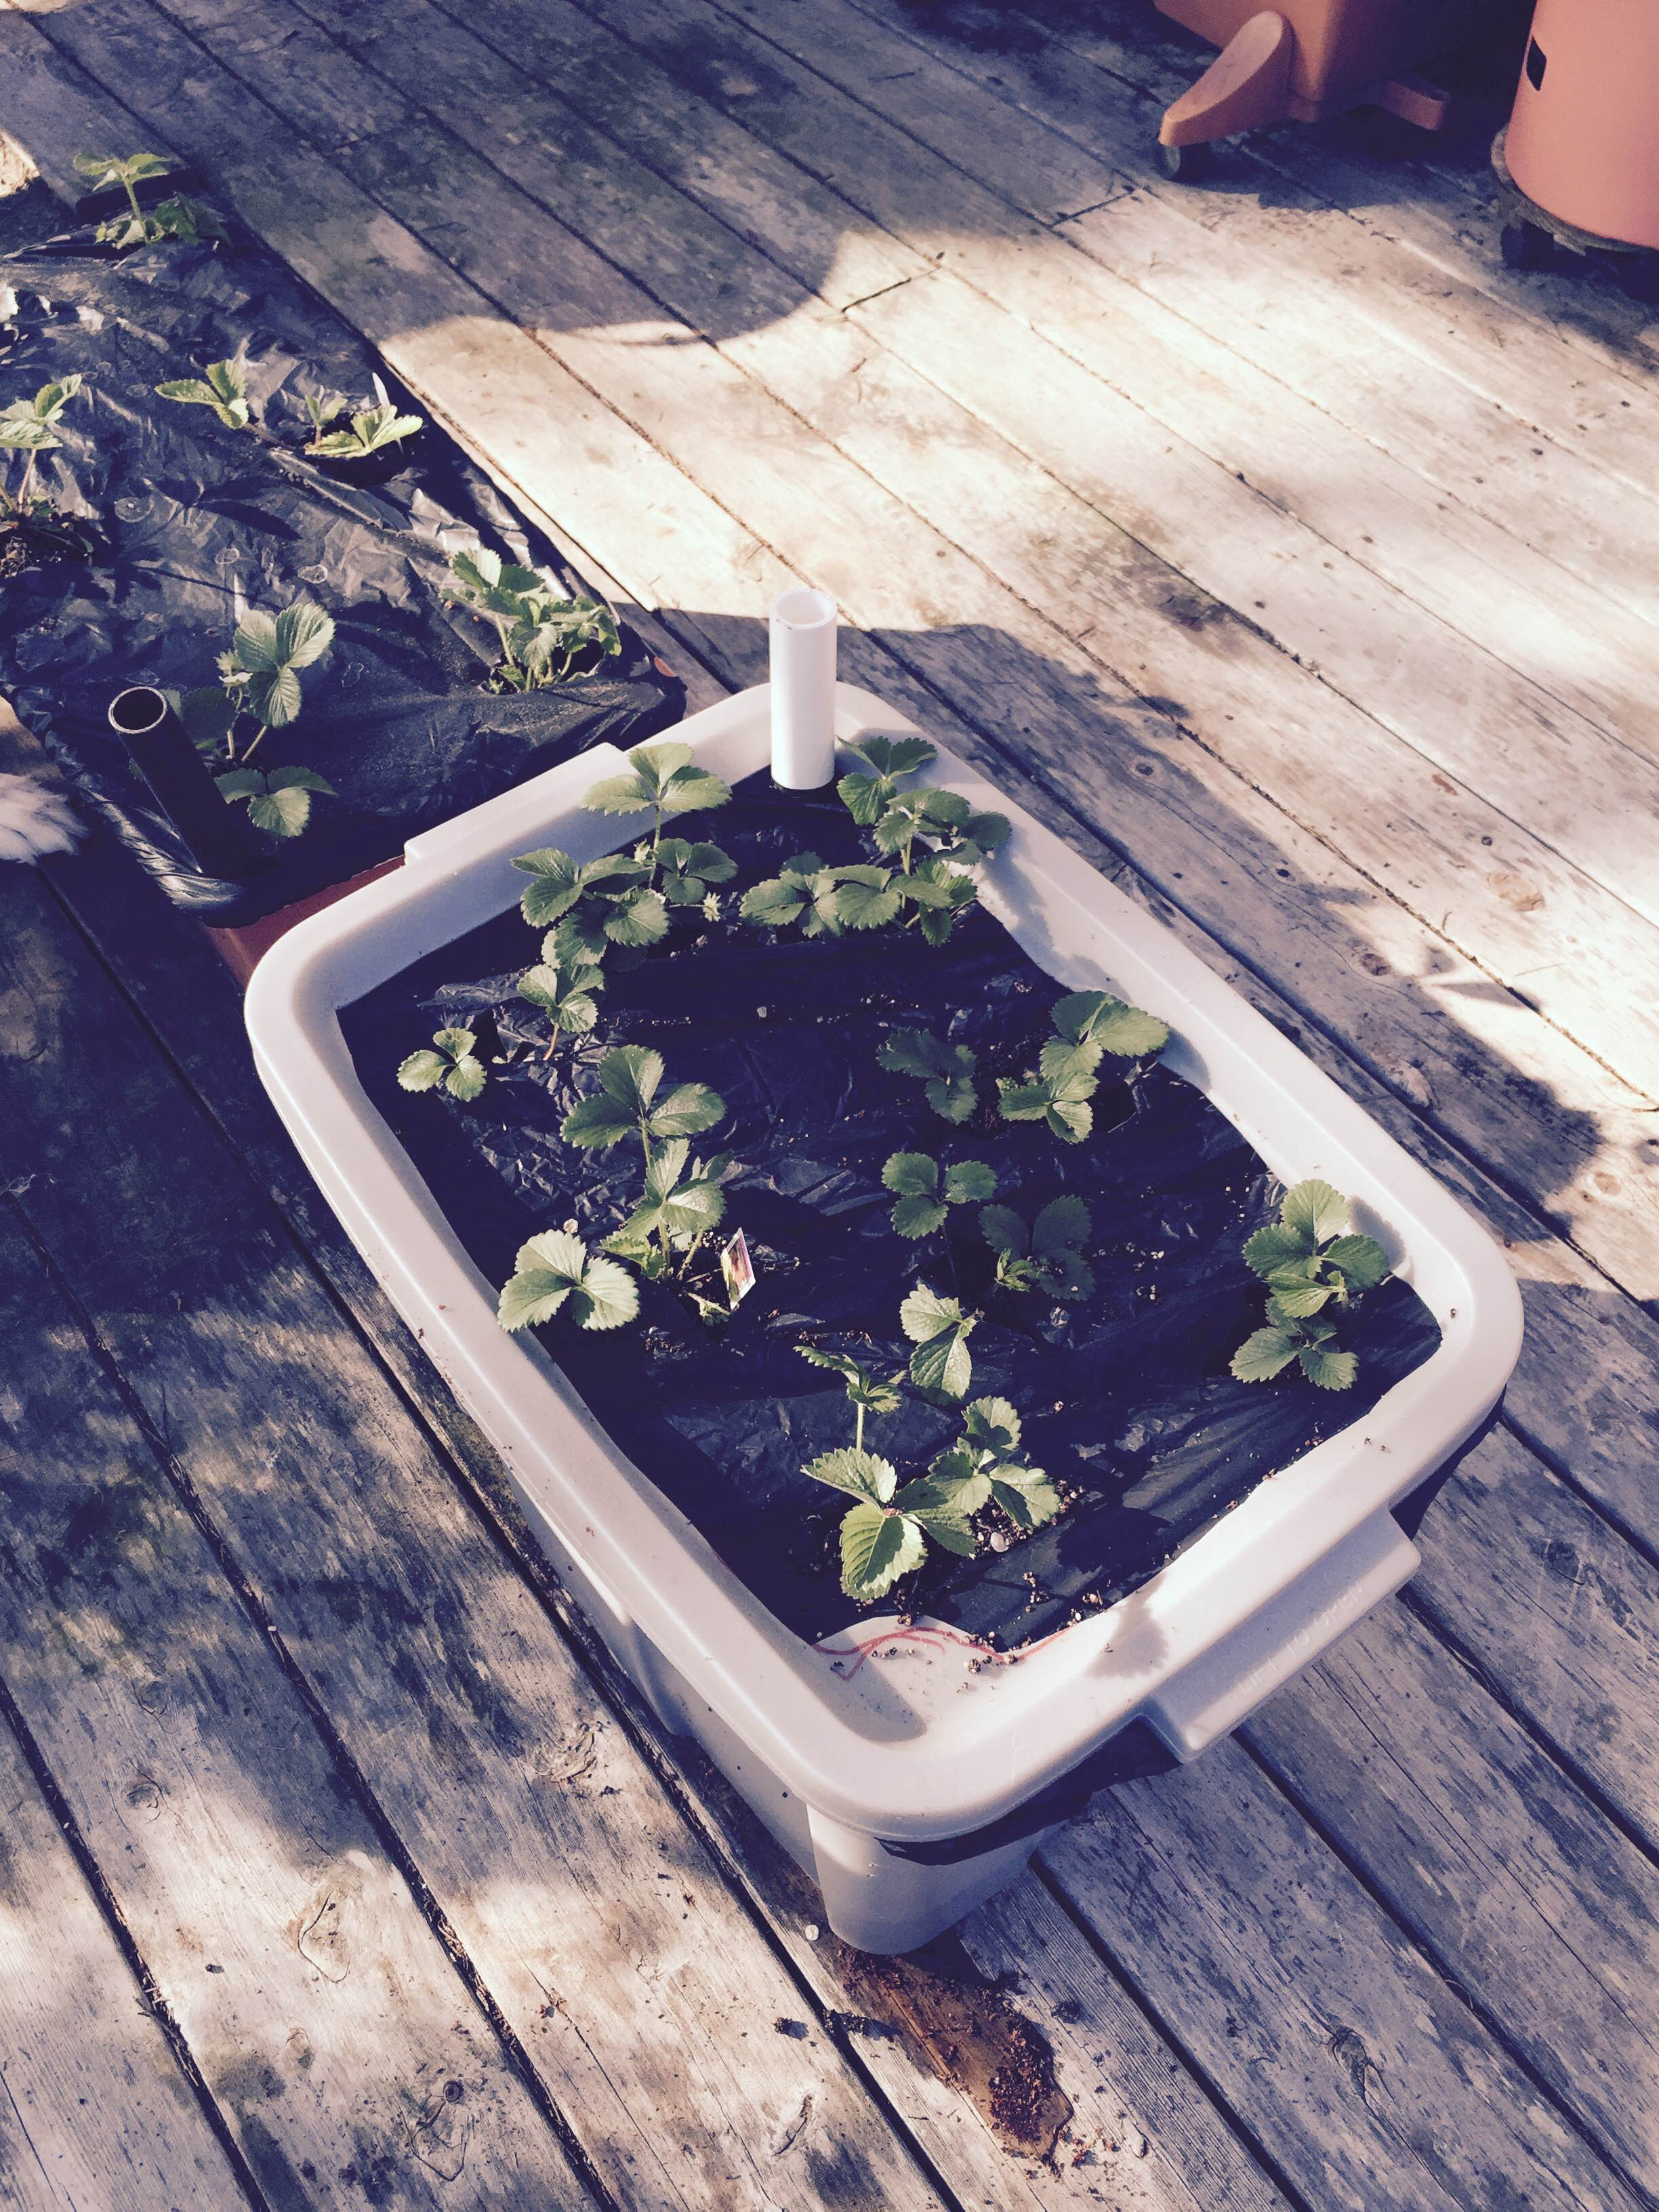 Container gardening: Earthbox vs Rubbermaid Tote